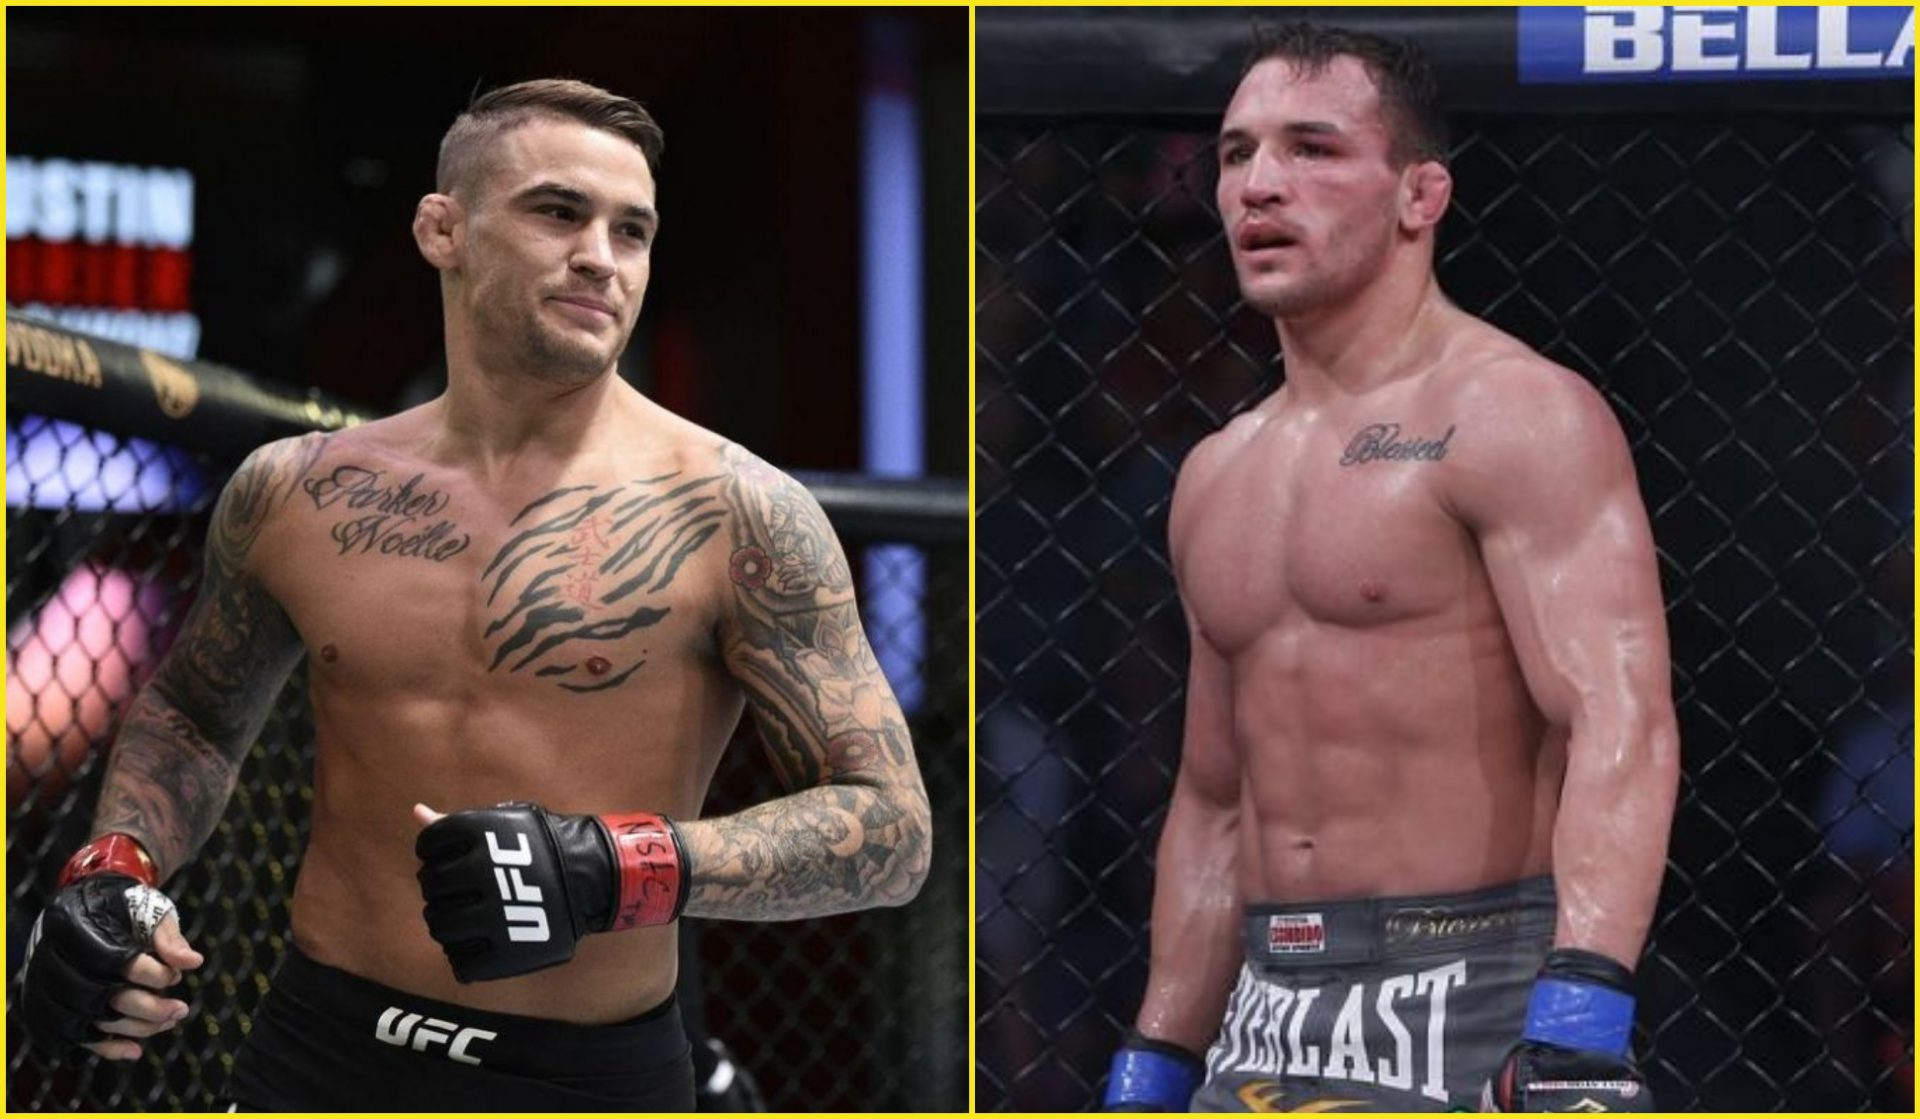 Michael Chandler gunning for a fight with Dustin Poirier - Michael Chandler